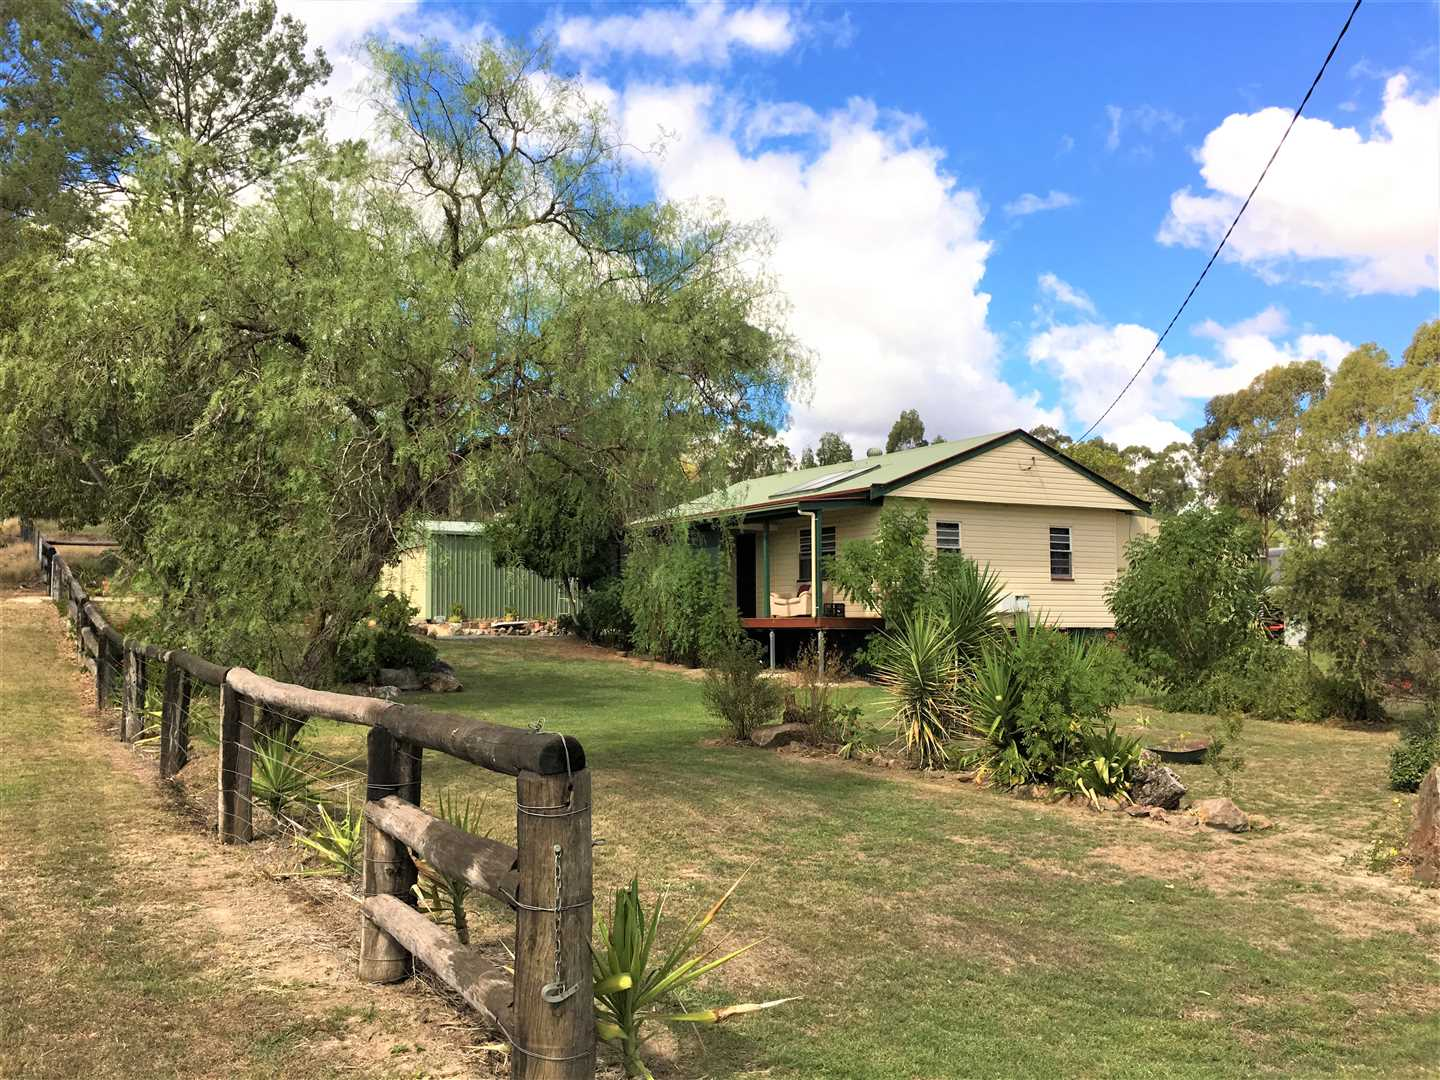 Rare opportunity to buy house, land, or both